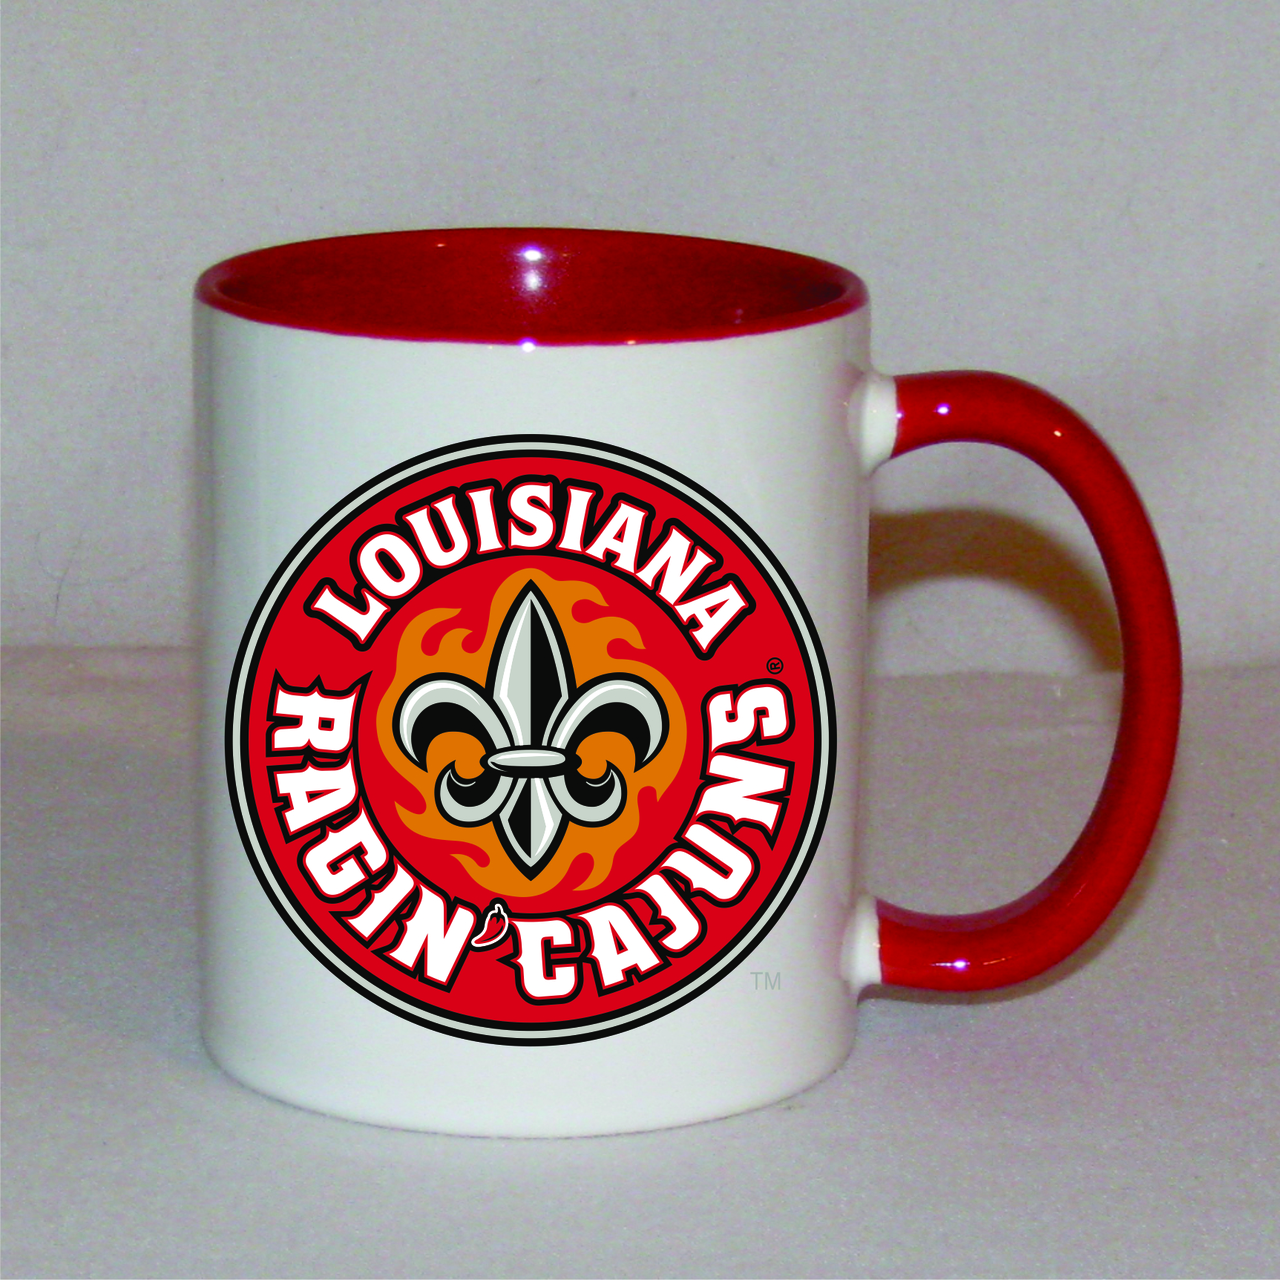 Louisiana Ragin' Cajuns Mugs & Coasters